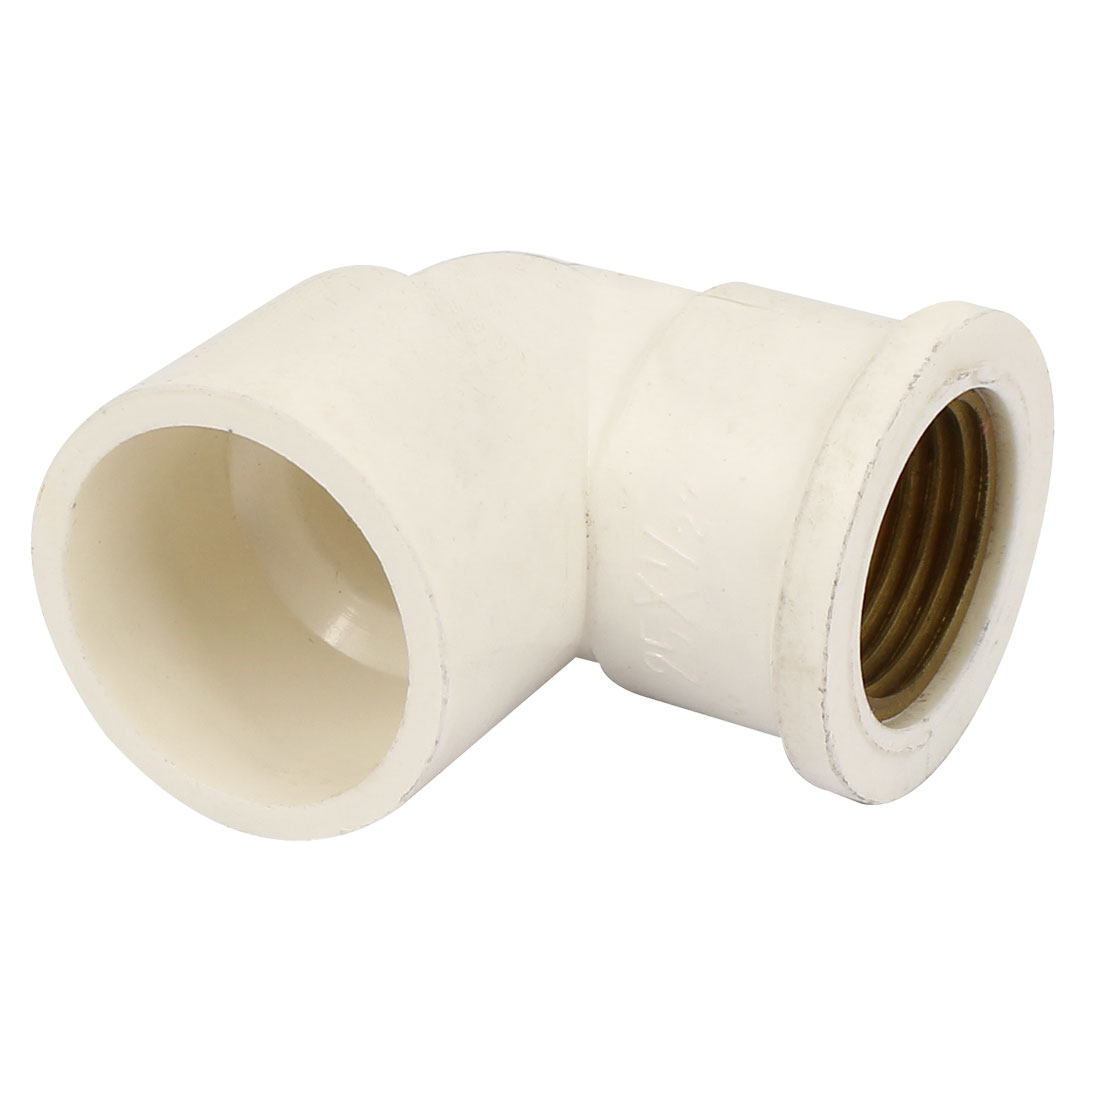 1/2BSP Female Thread 25mm Tube Inner Dia Elbow PVC Pipe Connecting Fitting